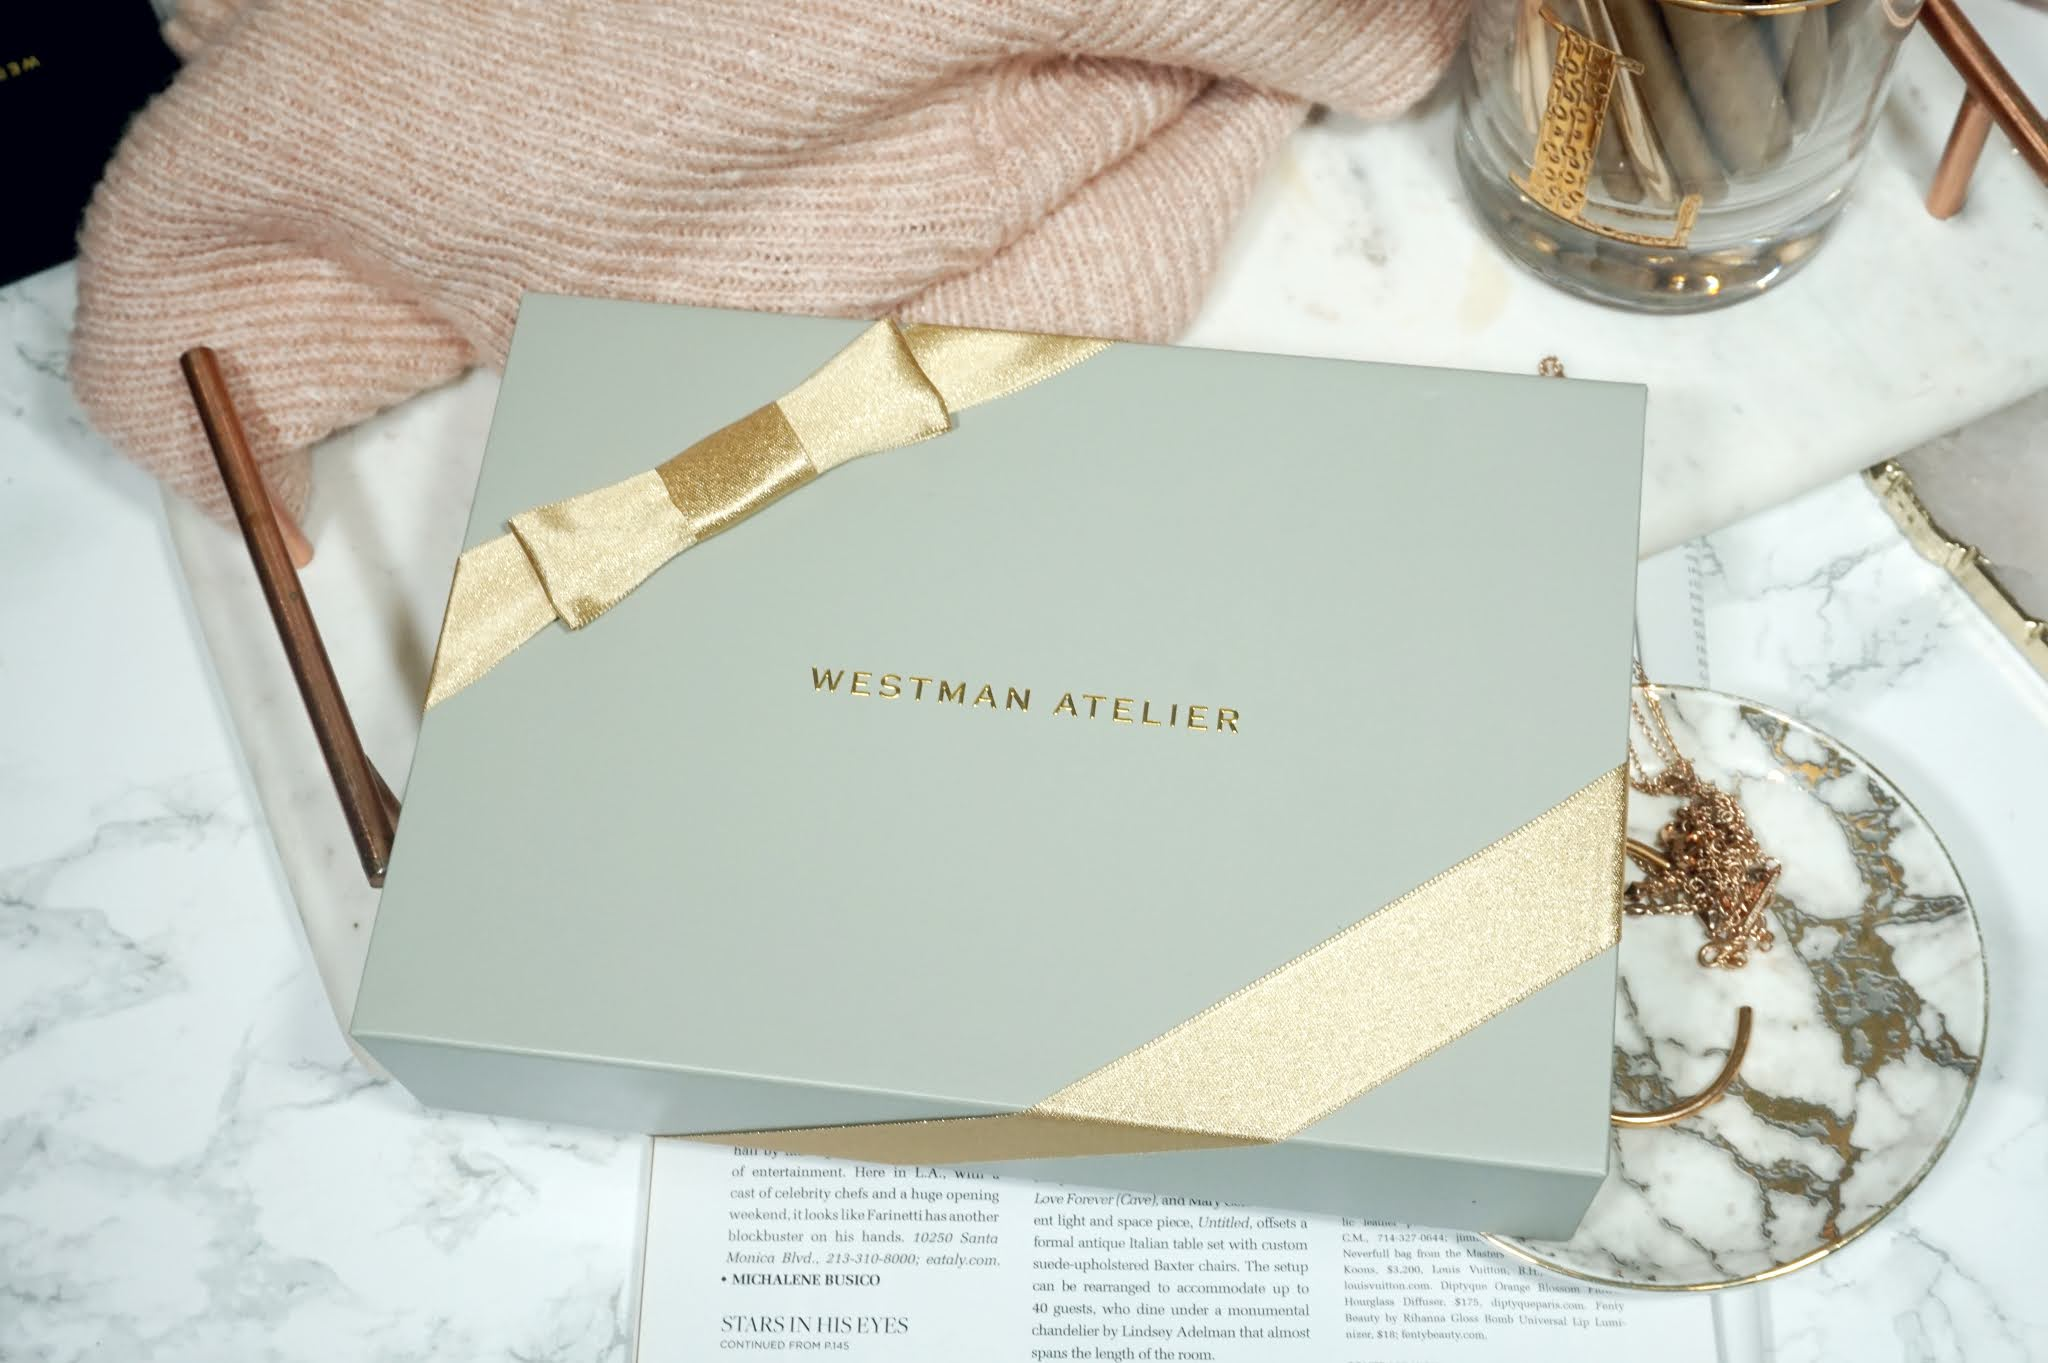 Westman Atelier Le Box Holiday Edition 2020 Review and Swatches